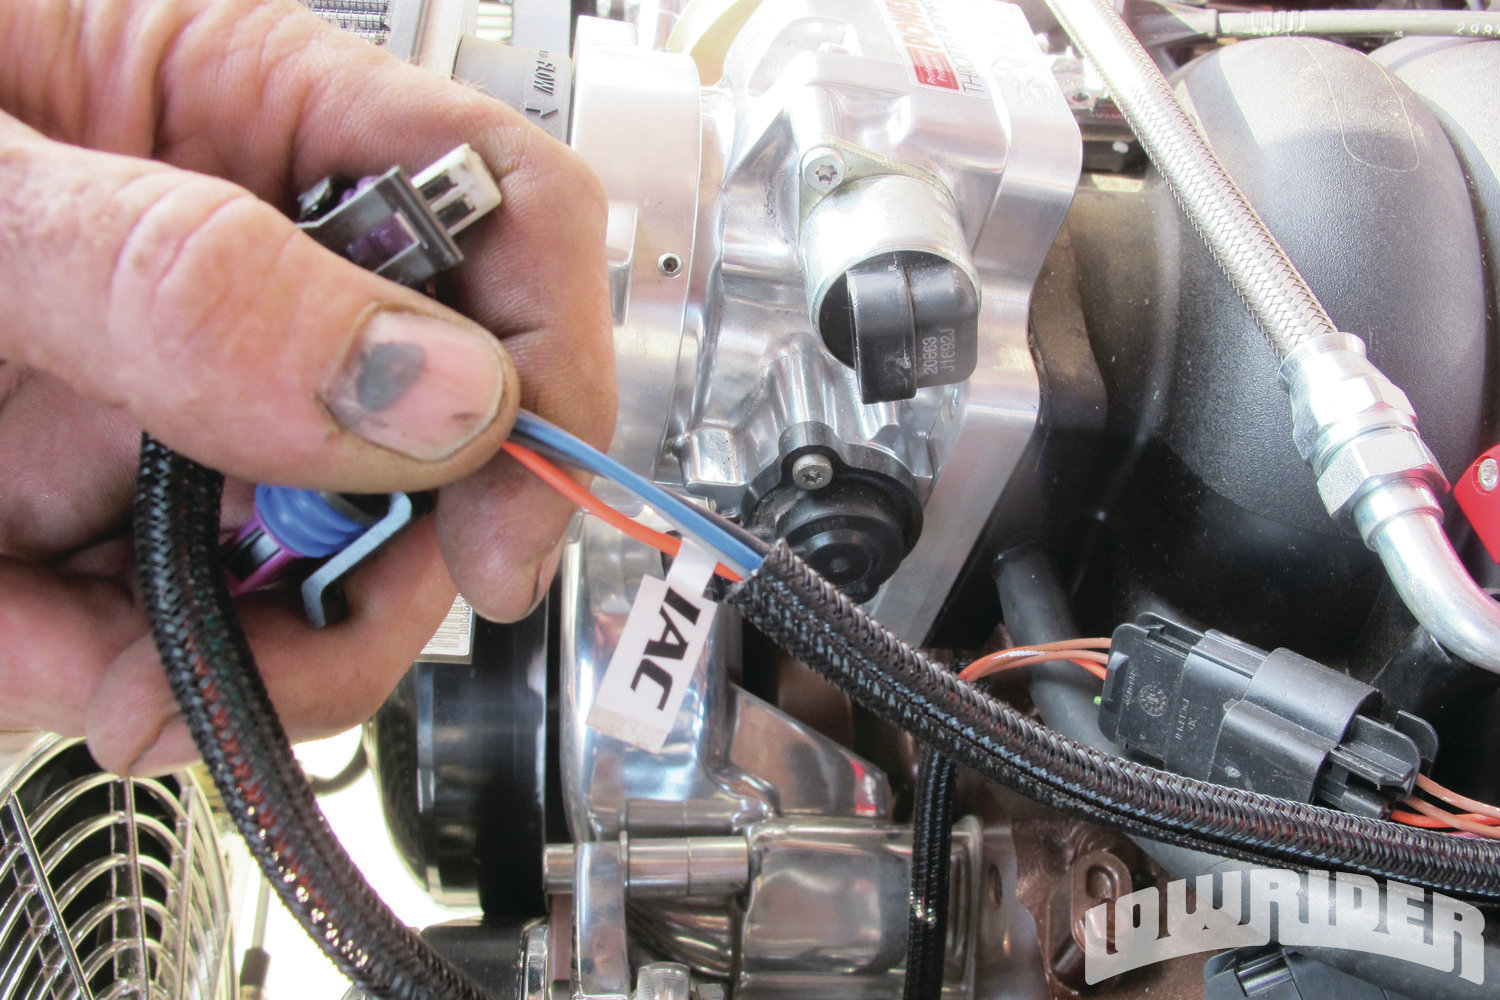 <strong>13</strong>. The cables are labeled, so it makes it easy to plug into the system.